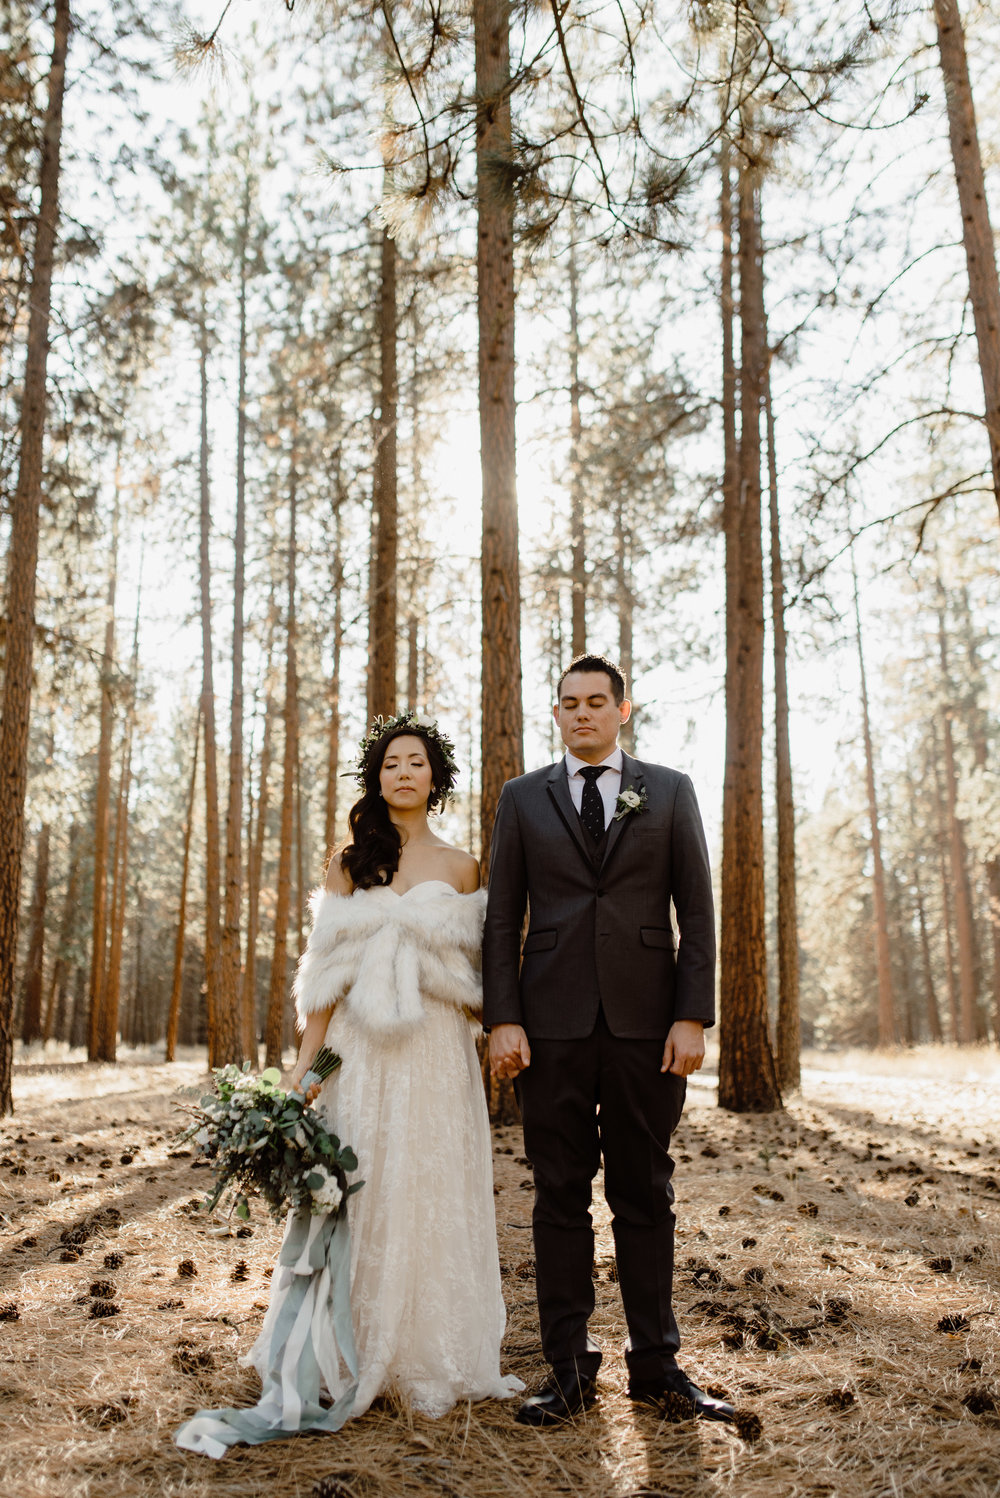 Justin + Christine - Winter Wedding in the Woods | Sisters, OR